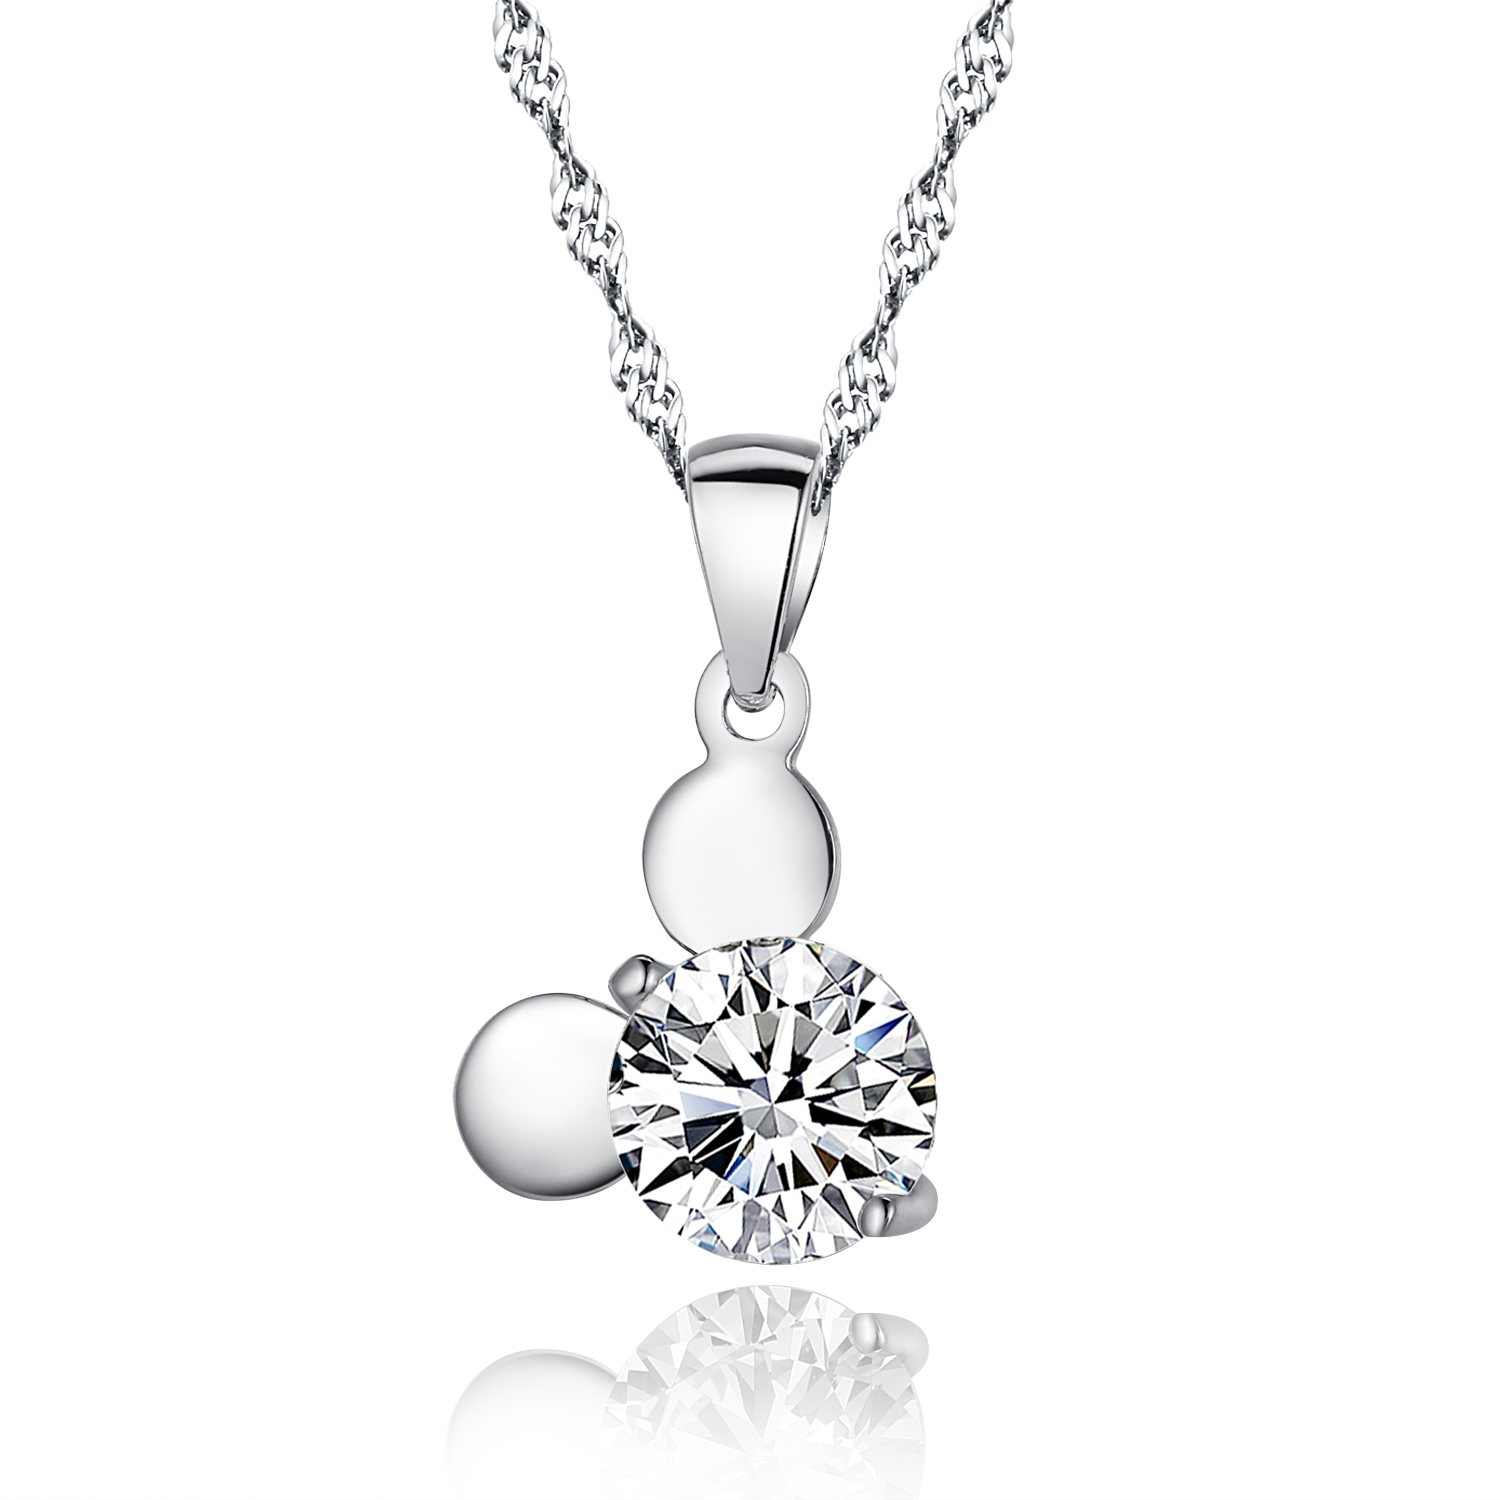 genuine sterling 925 silver pendant necklace jewelry with. Black Bedroom Furniture Sets. Home Design Ideas